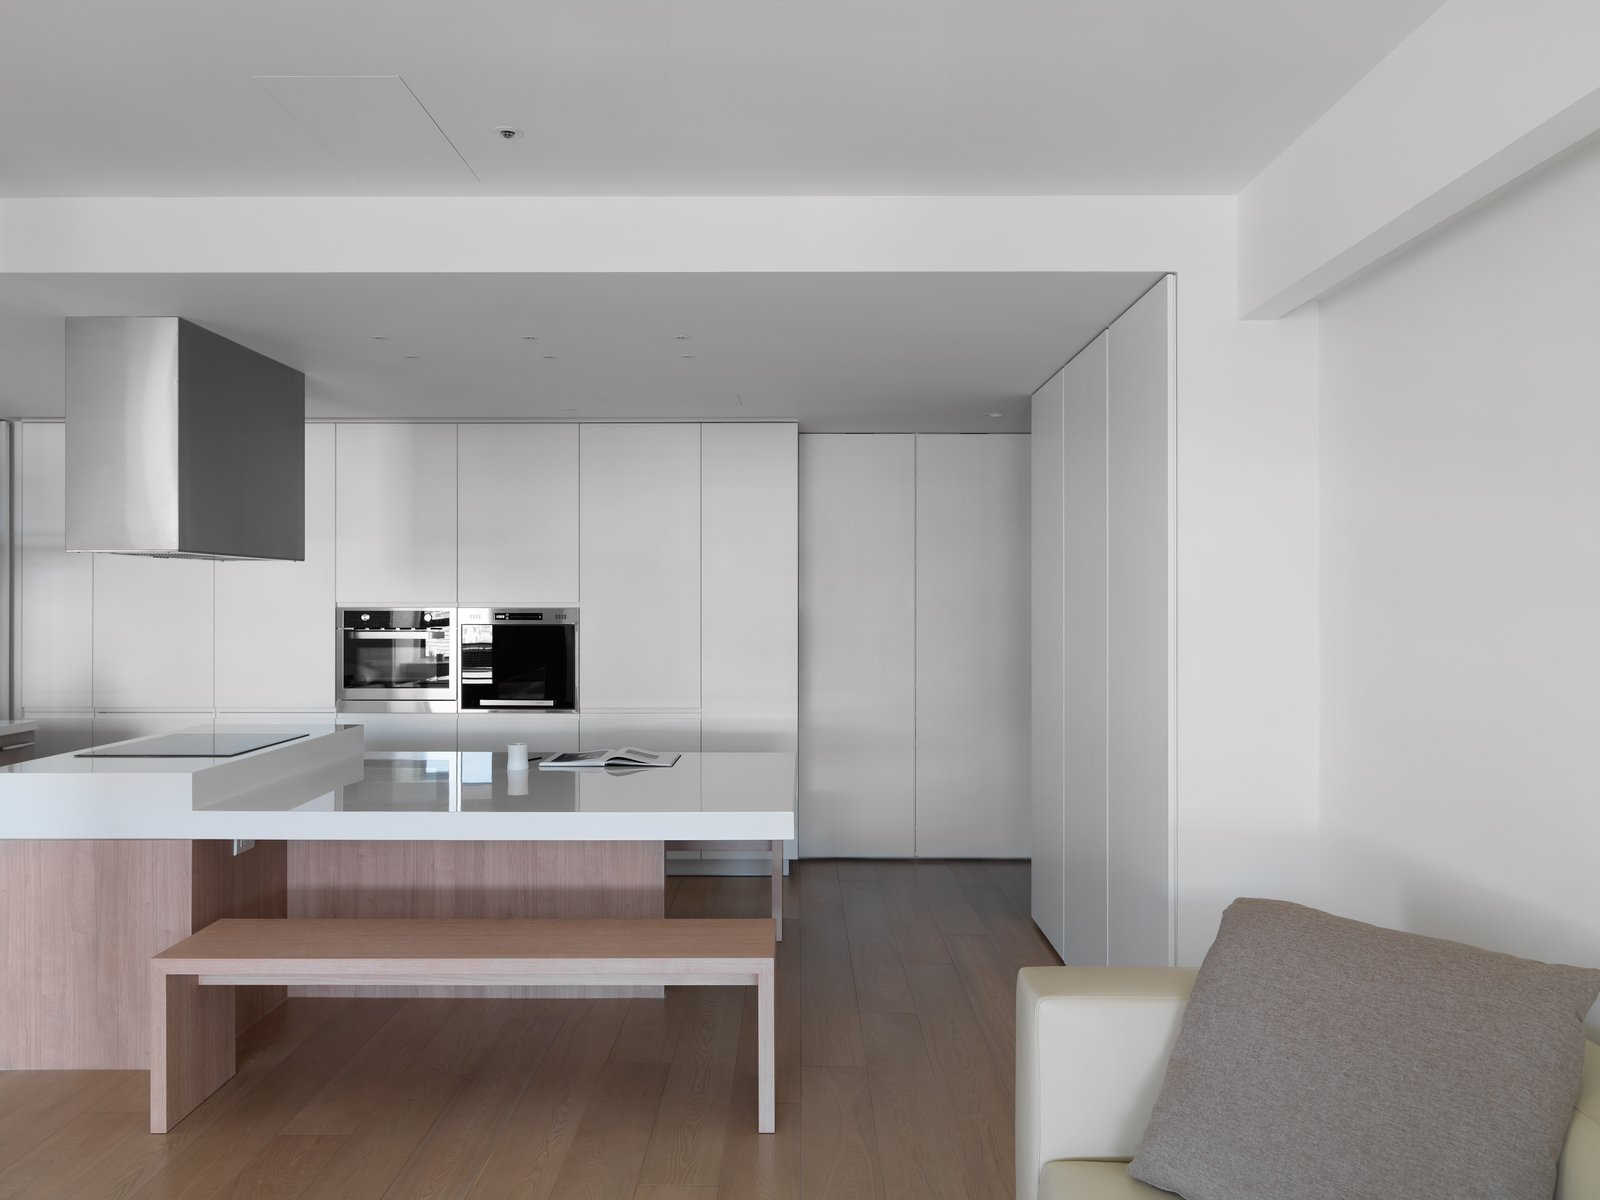 There are storage throughout the entire apartment, but its appearance is reduced to simple line that adds rhythm to the space. KT Apartment by Marty Chou Architecture